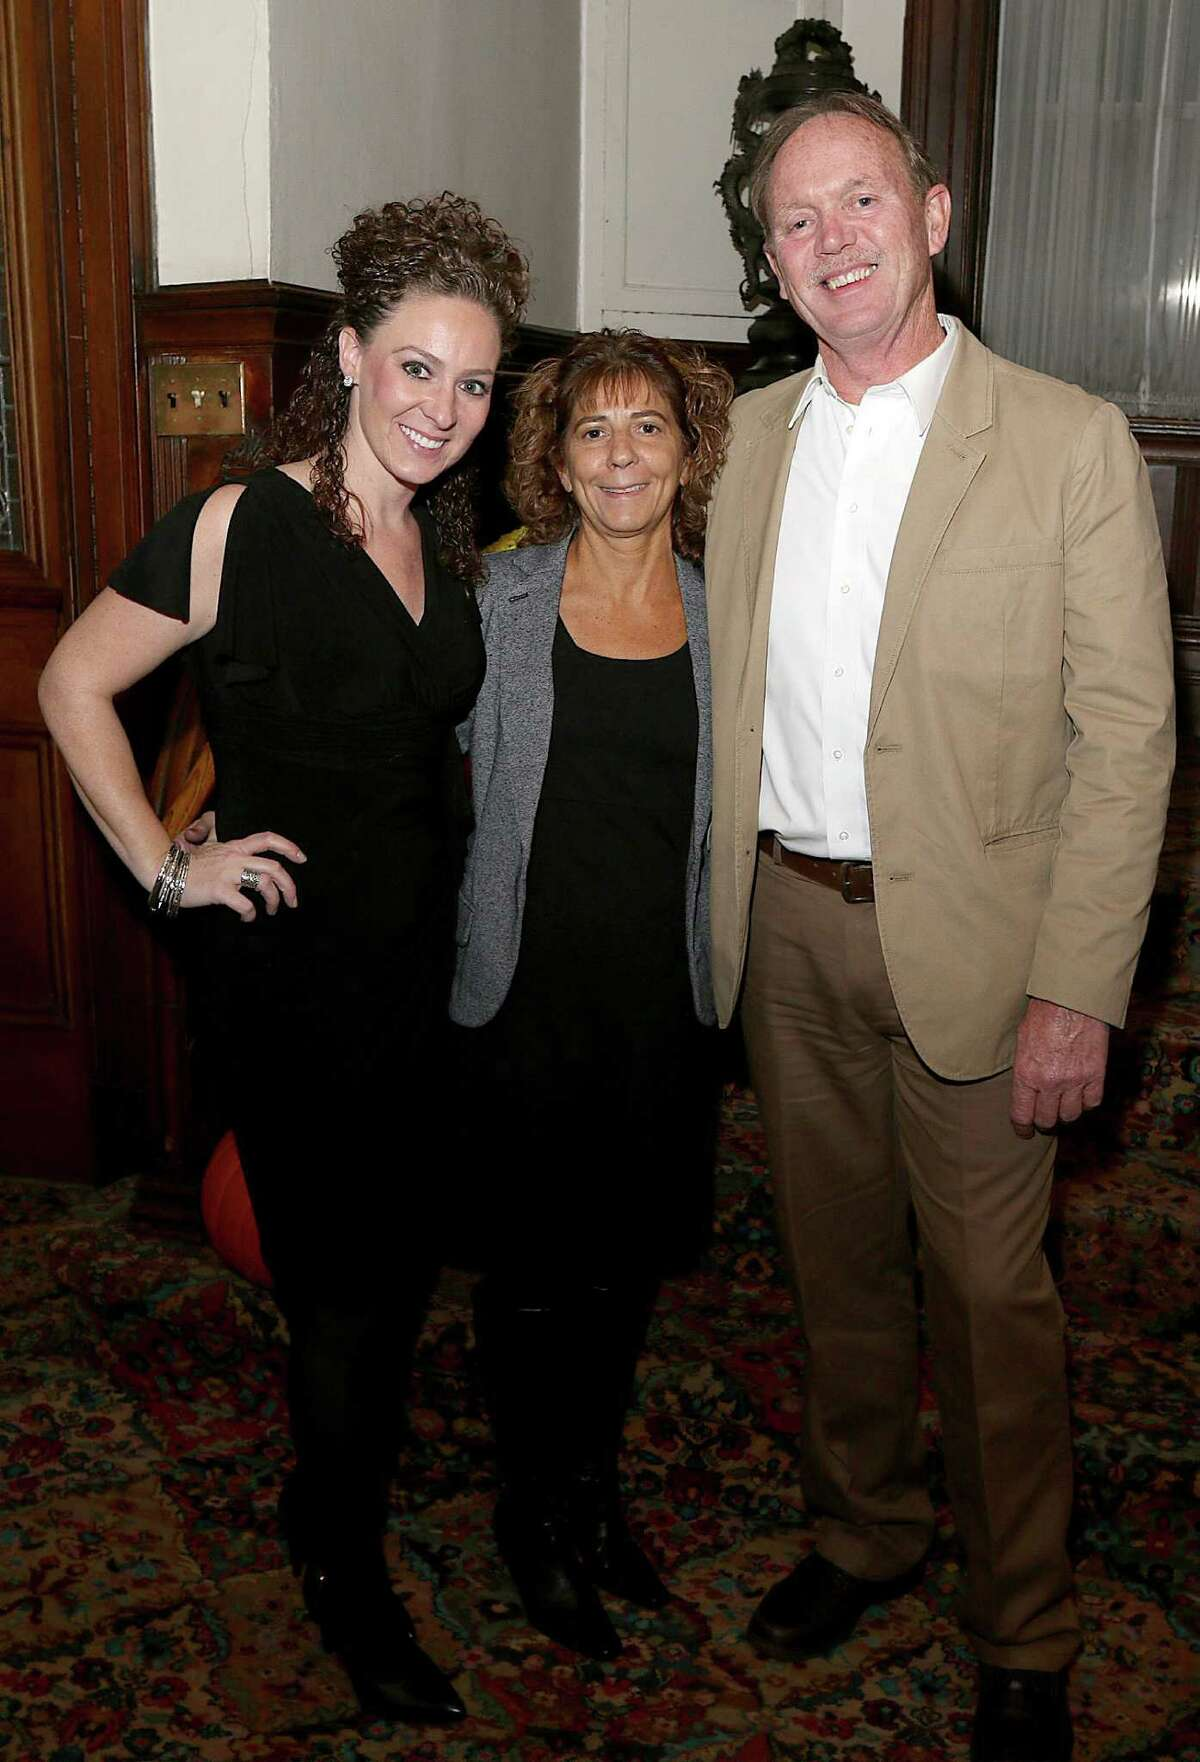 Were you Seen at the Autumn Mix and Mingle event, a benefit for the Cystic Fibrosis Foundation held at the Fort Orange Club in Albany on Saturday, Oct. 24, 2105?